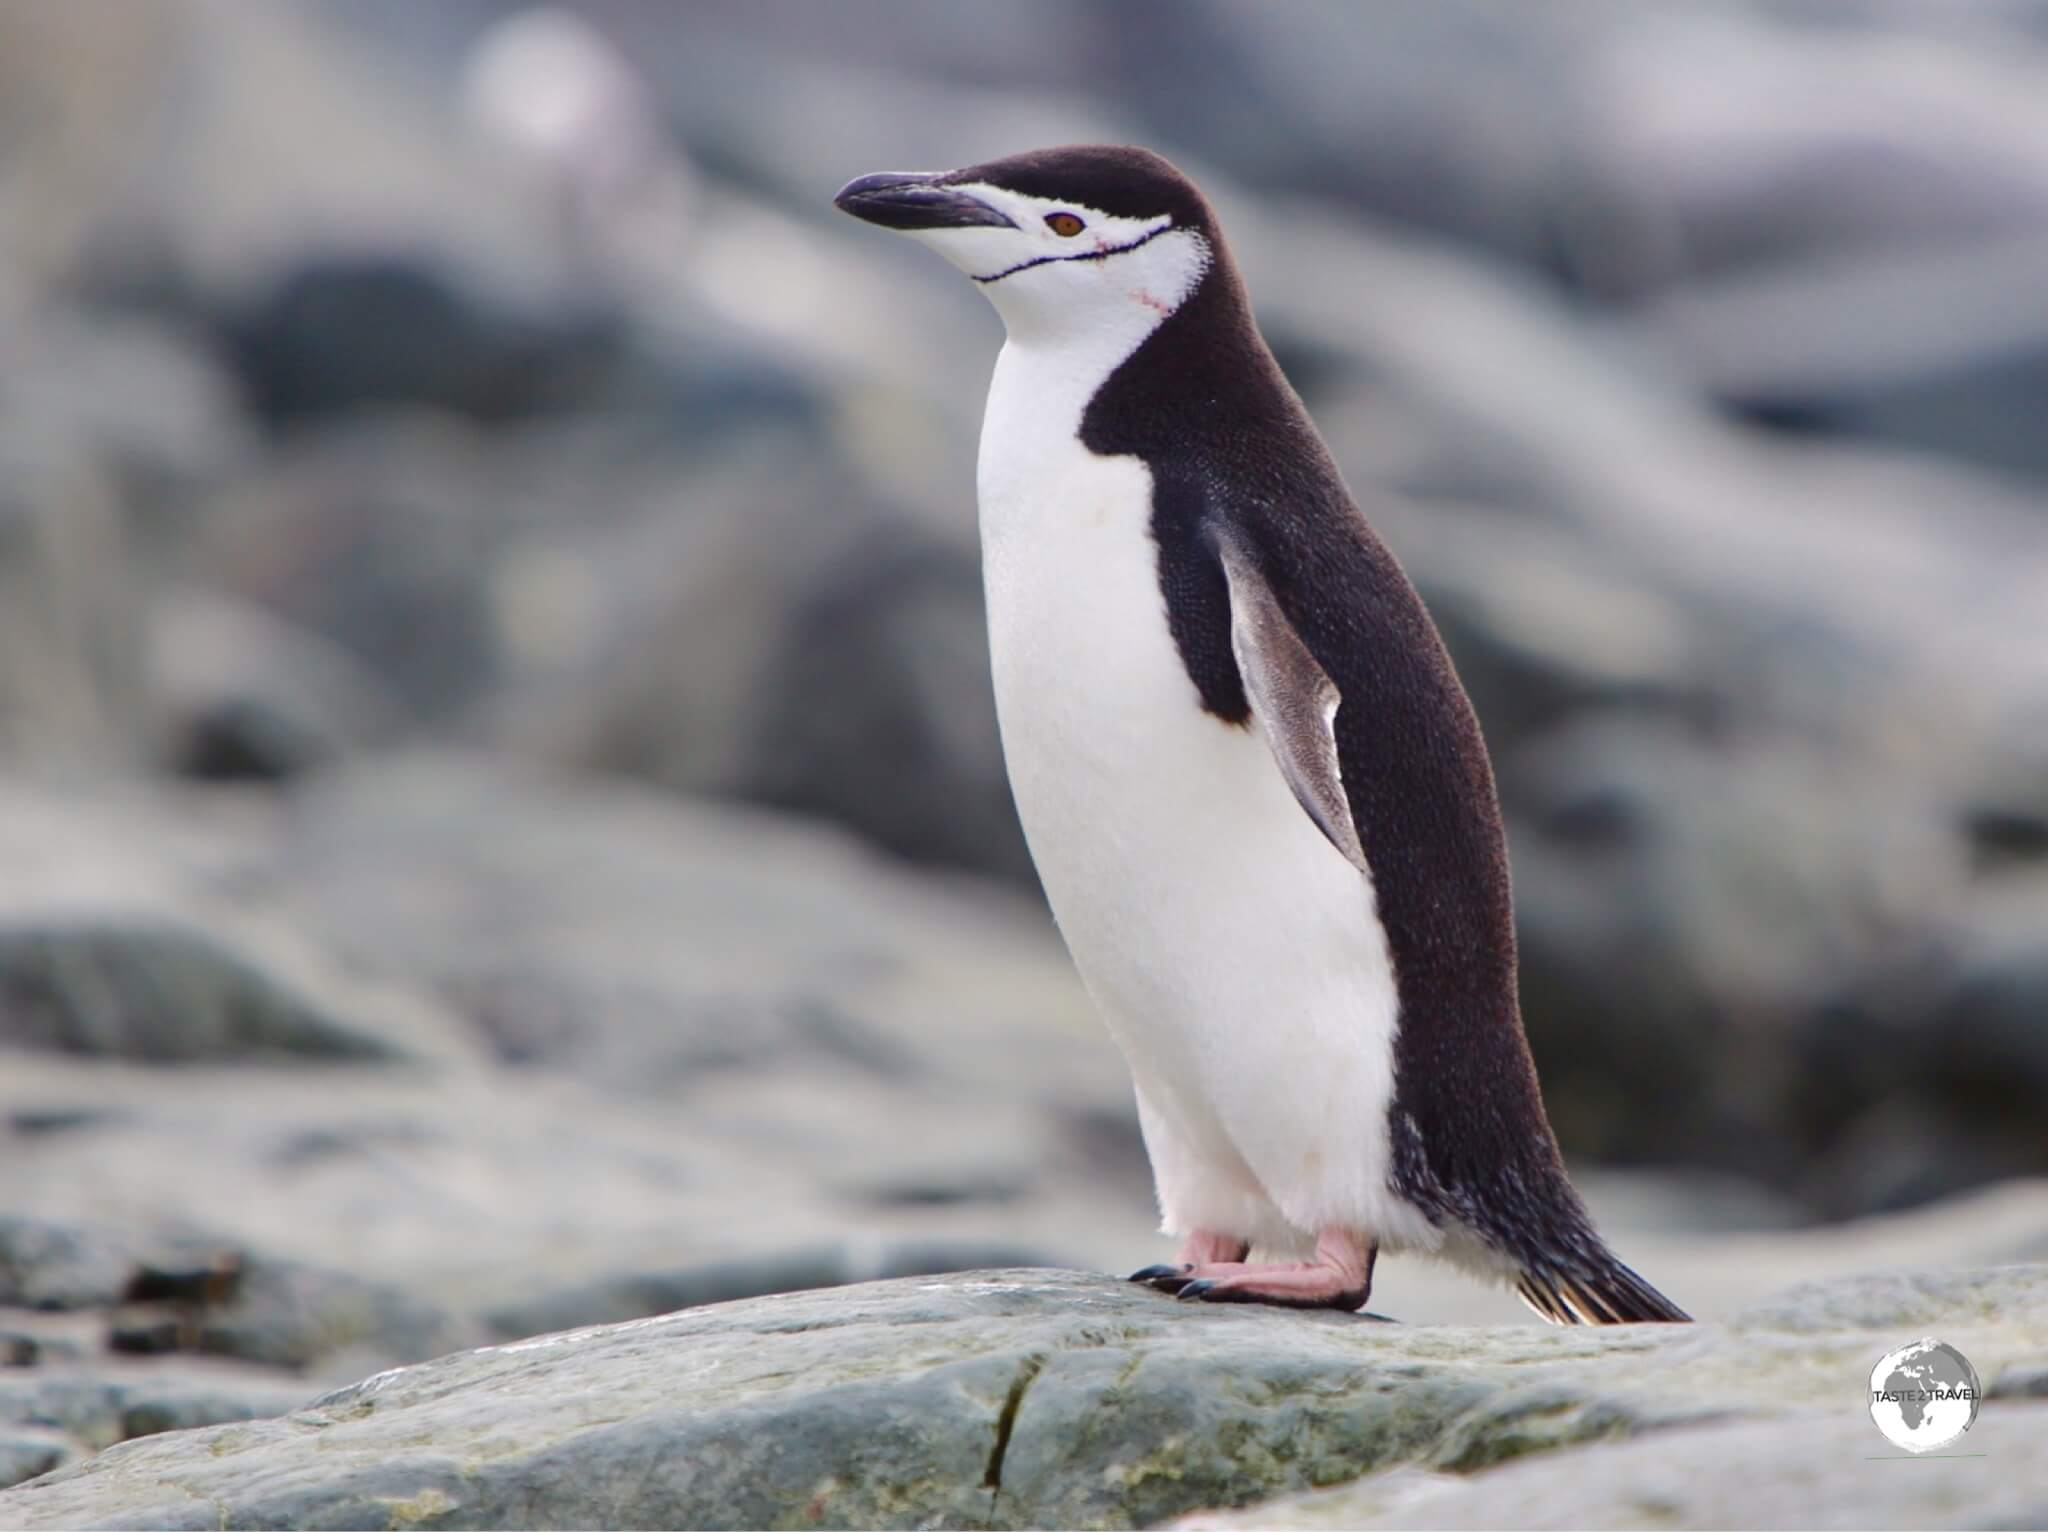 The Chinstrap is related to the Gentoo and Adélie penguins.